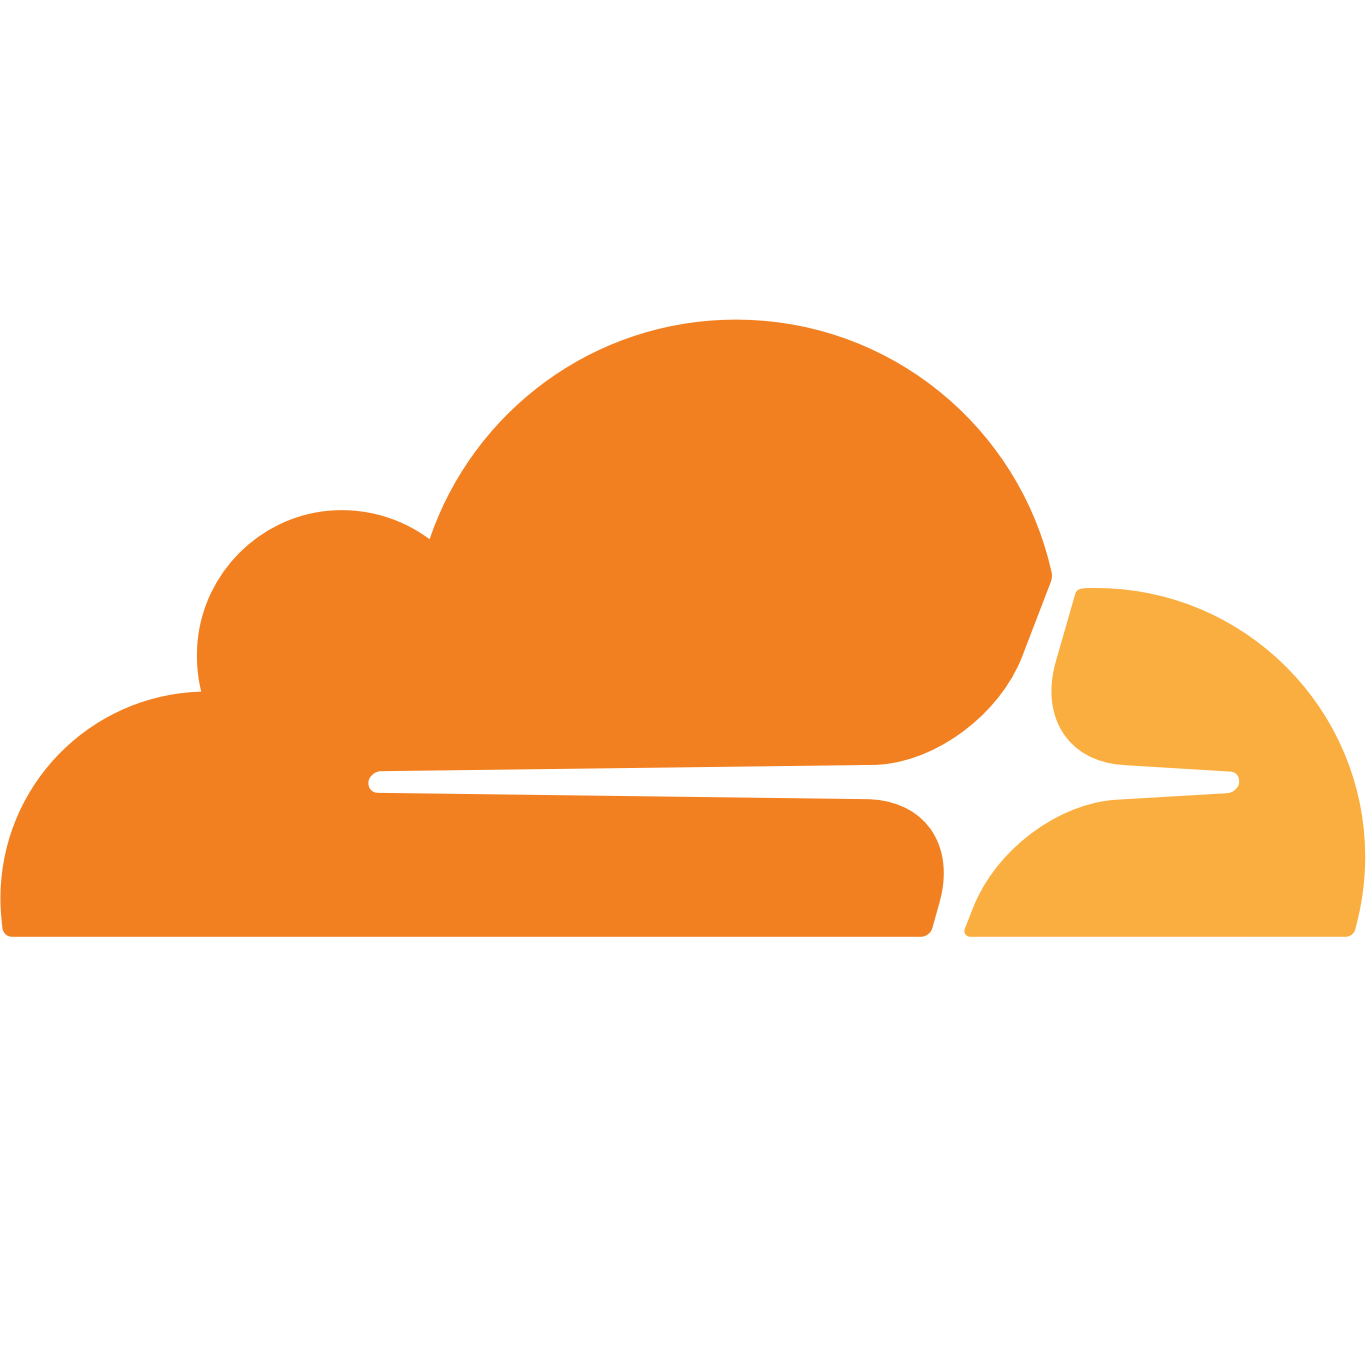 :cloudflare: